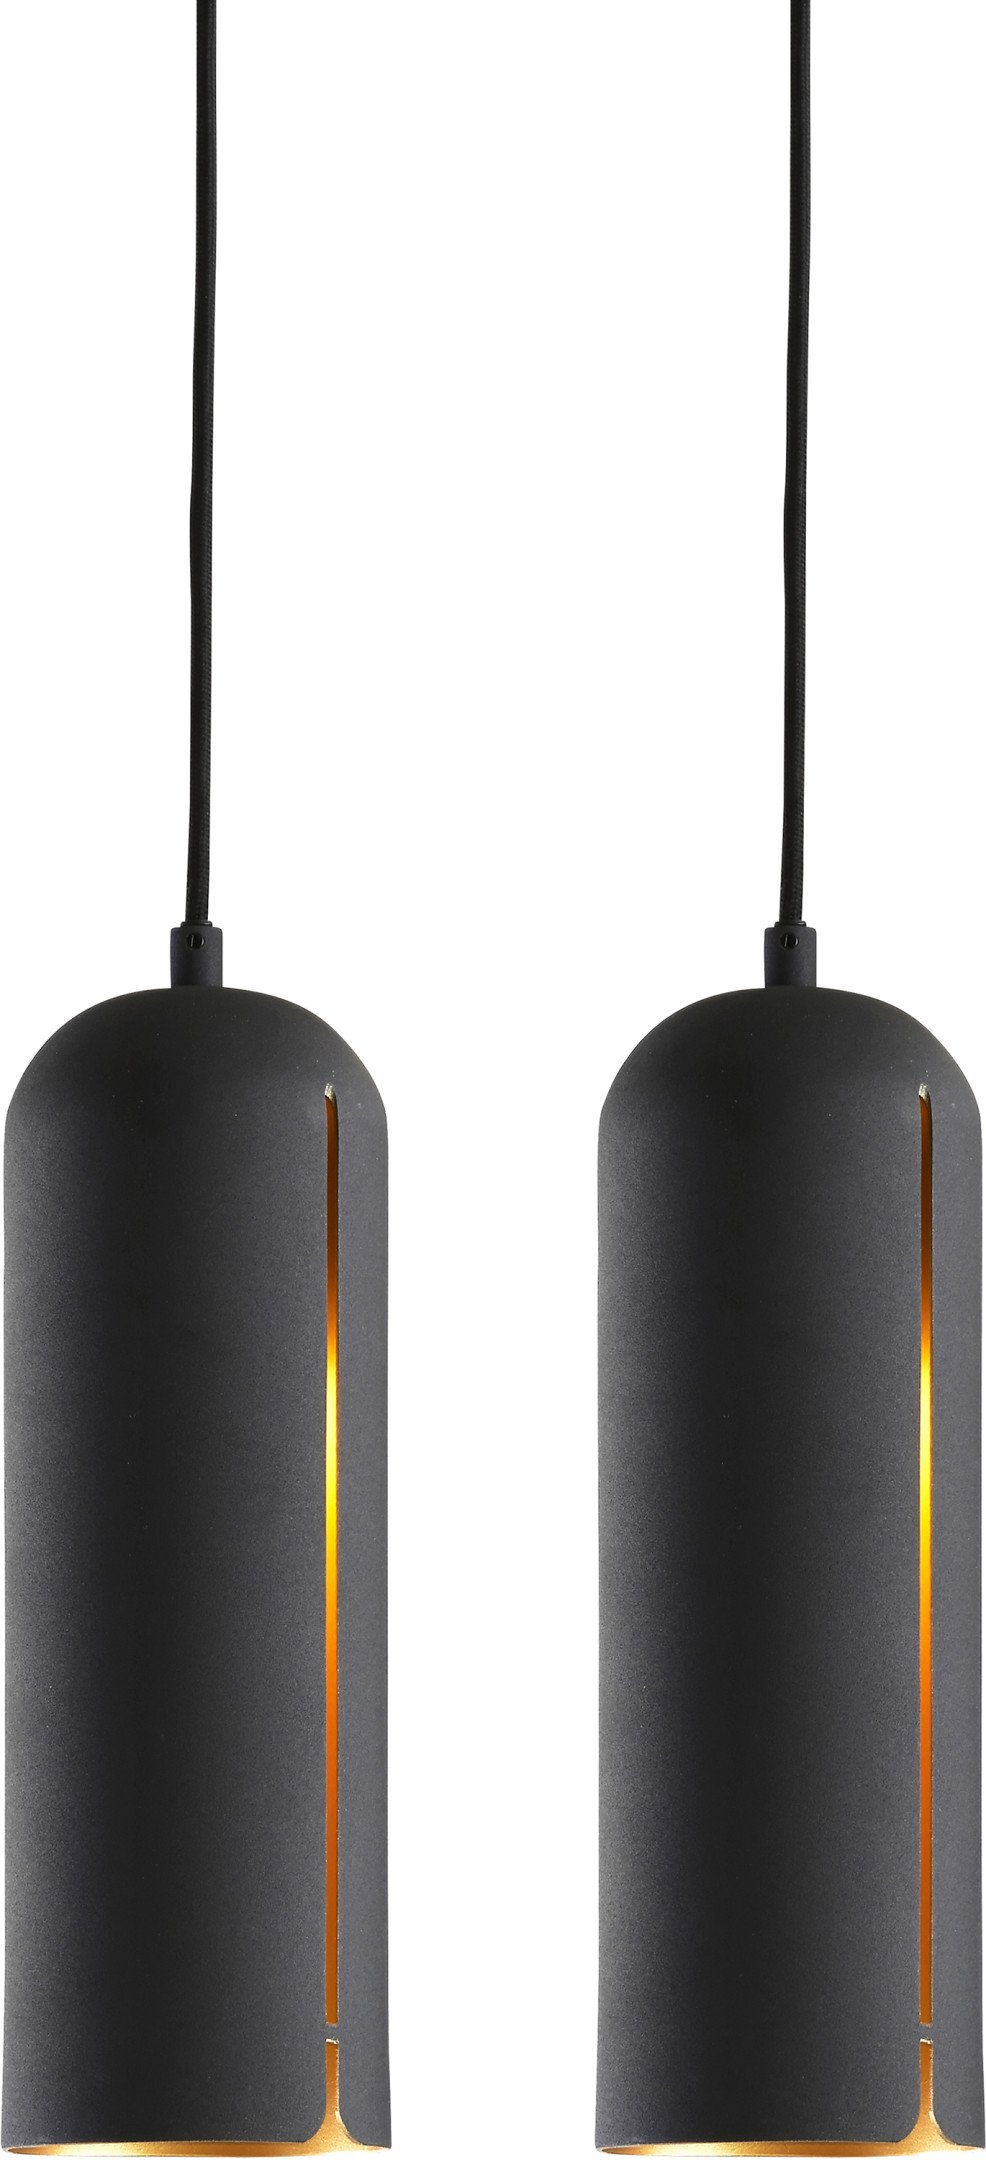 Pair of Gap Pendant Lamps Tall Black by NUR Design for WOUD